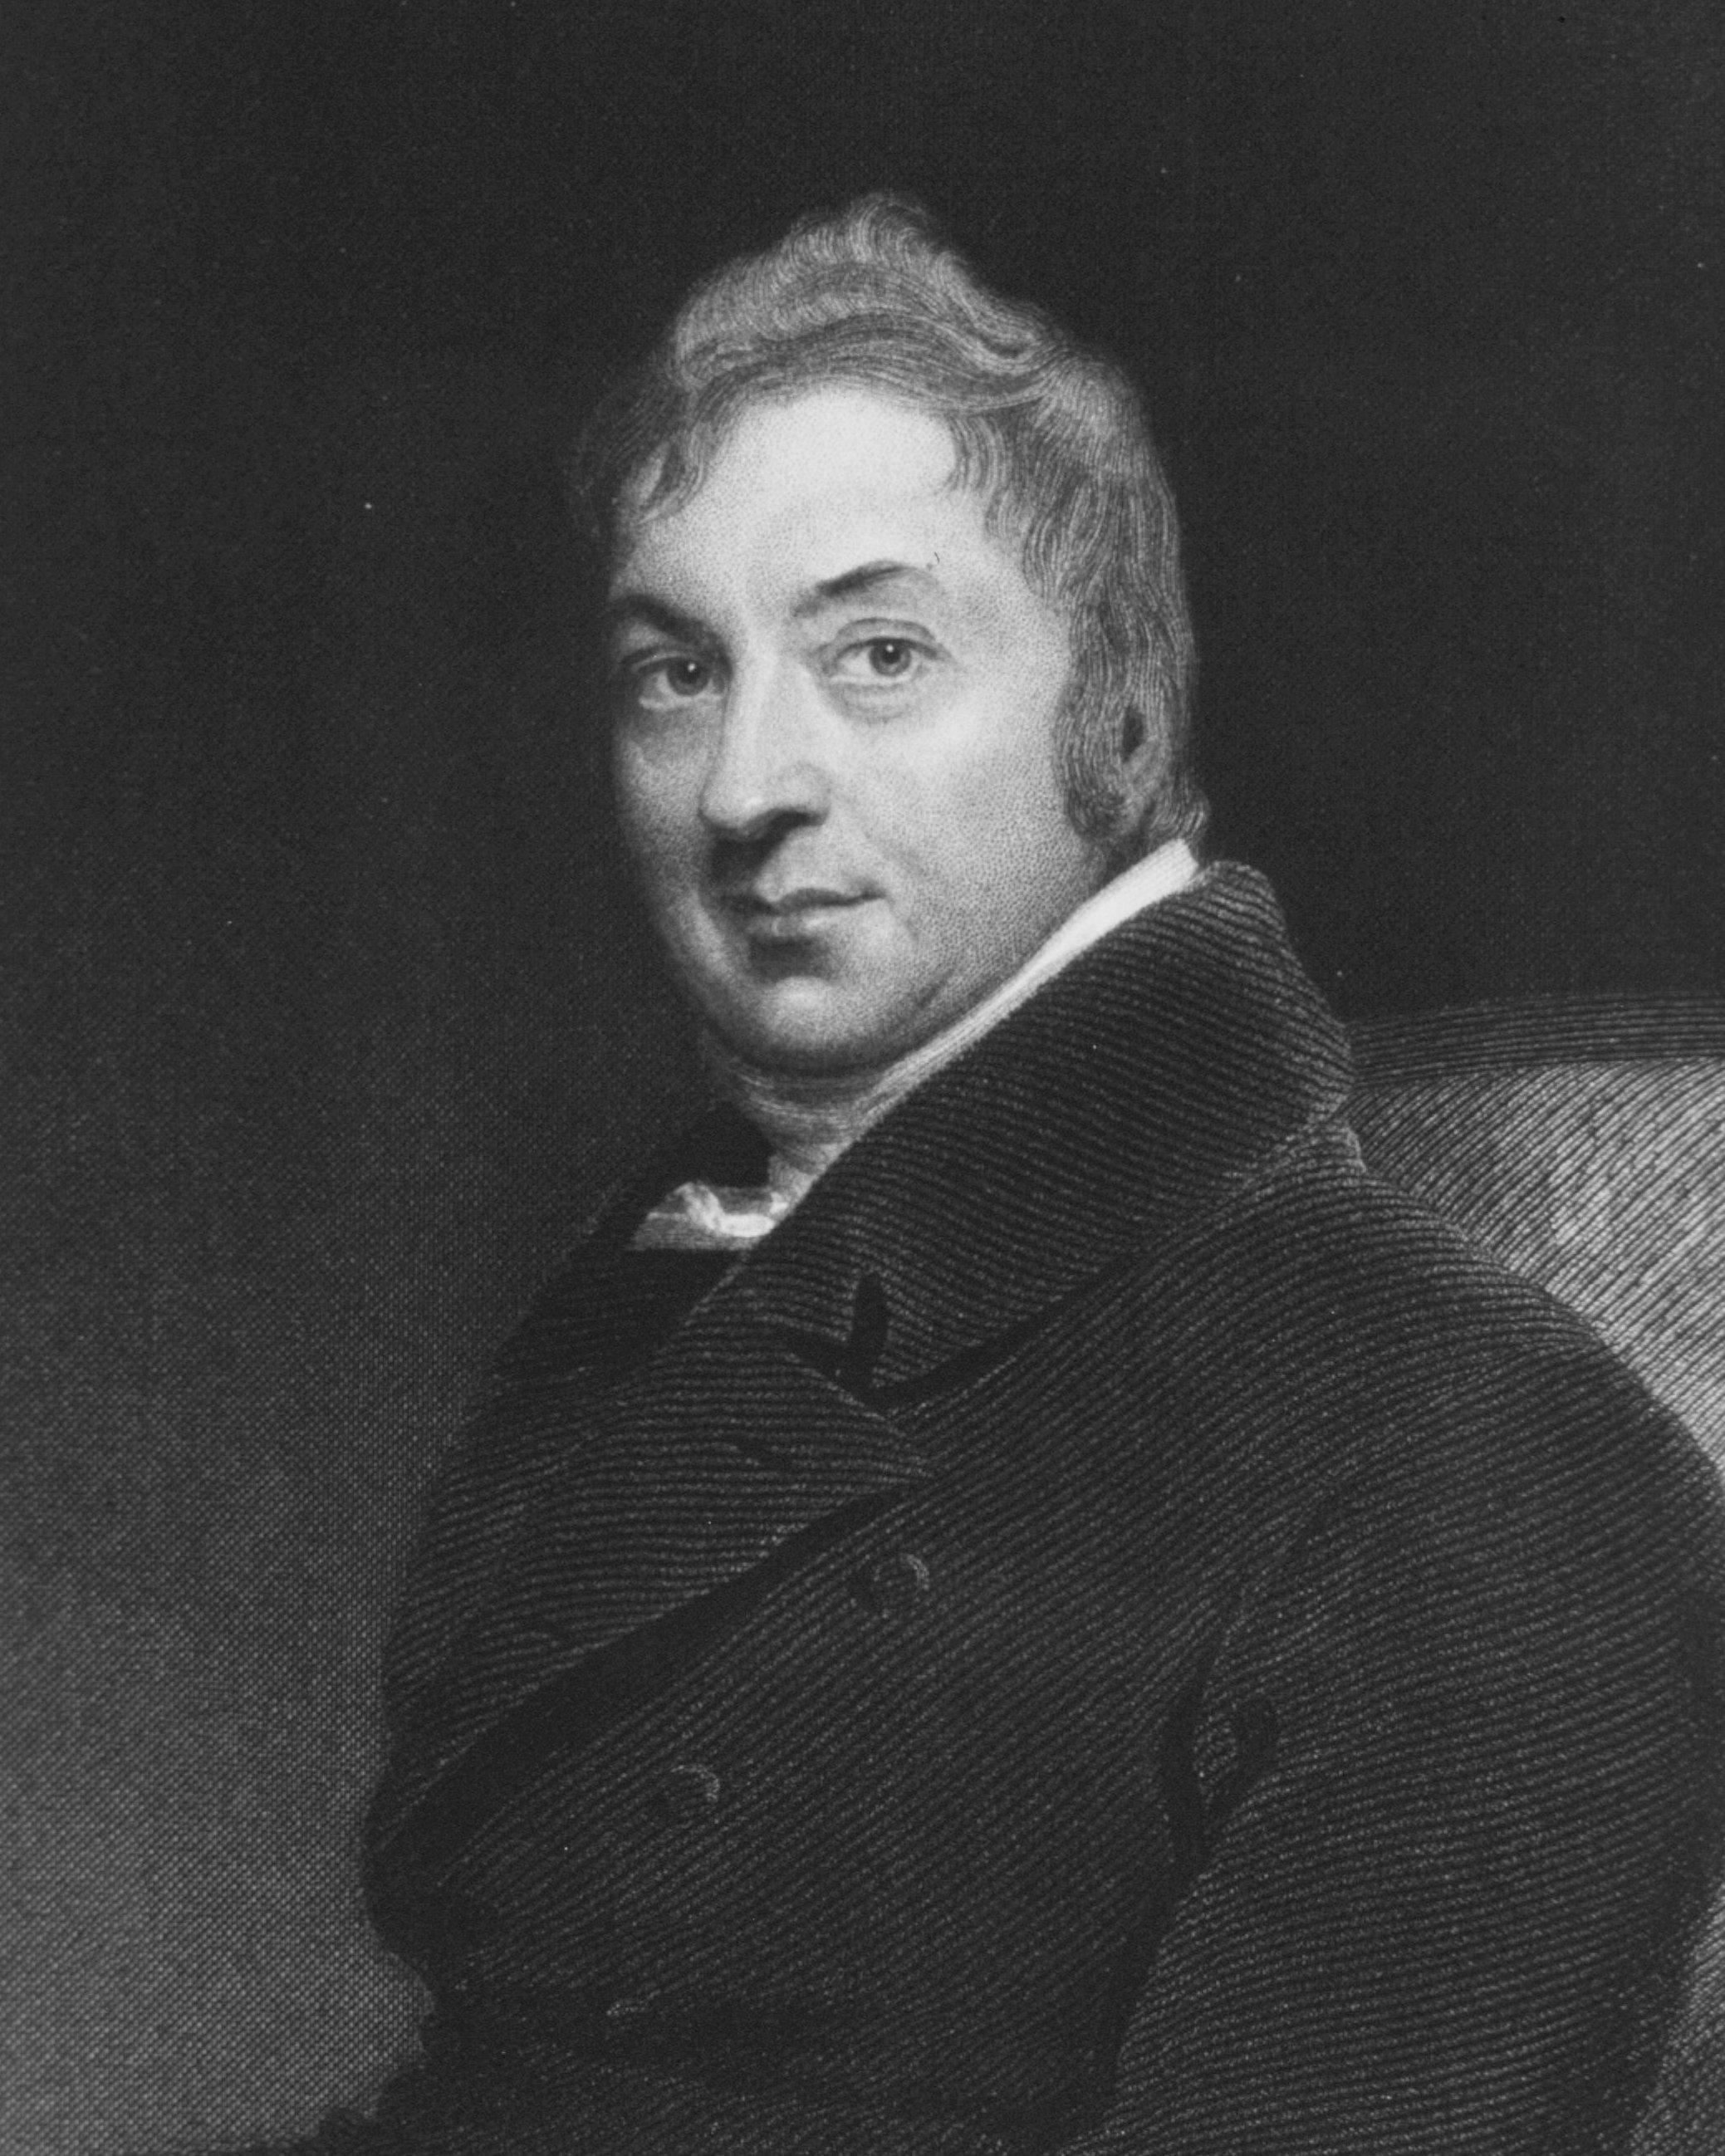 File:Edward Jenner2.jpg